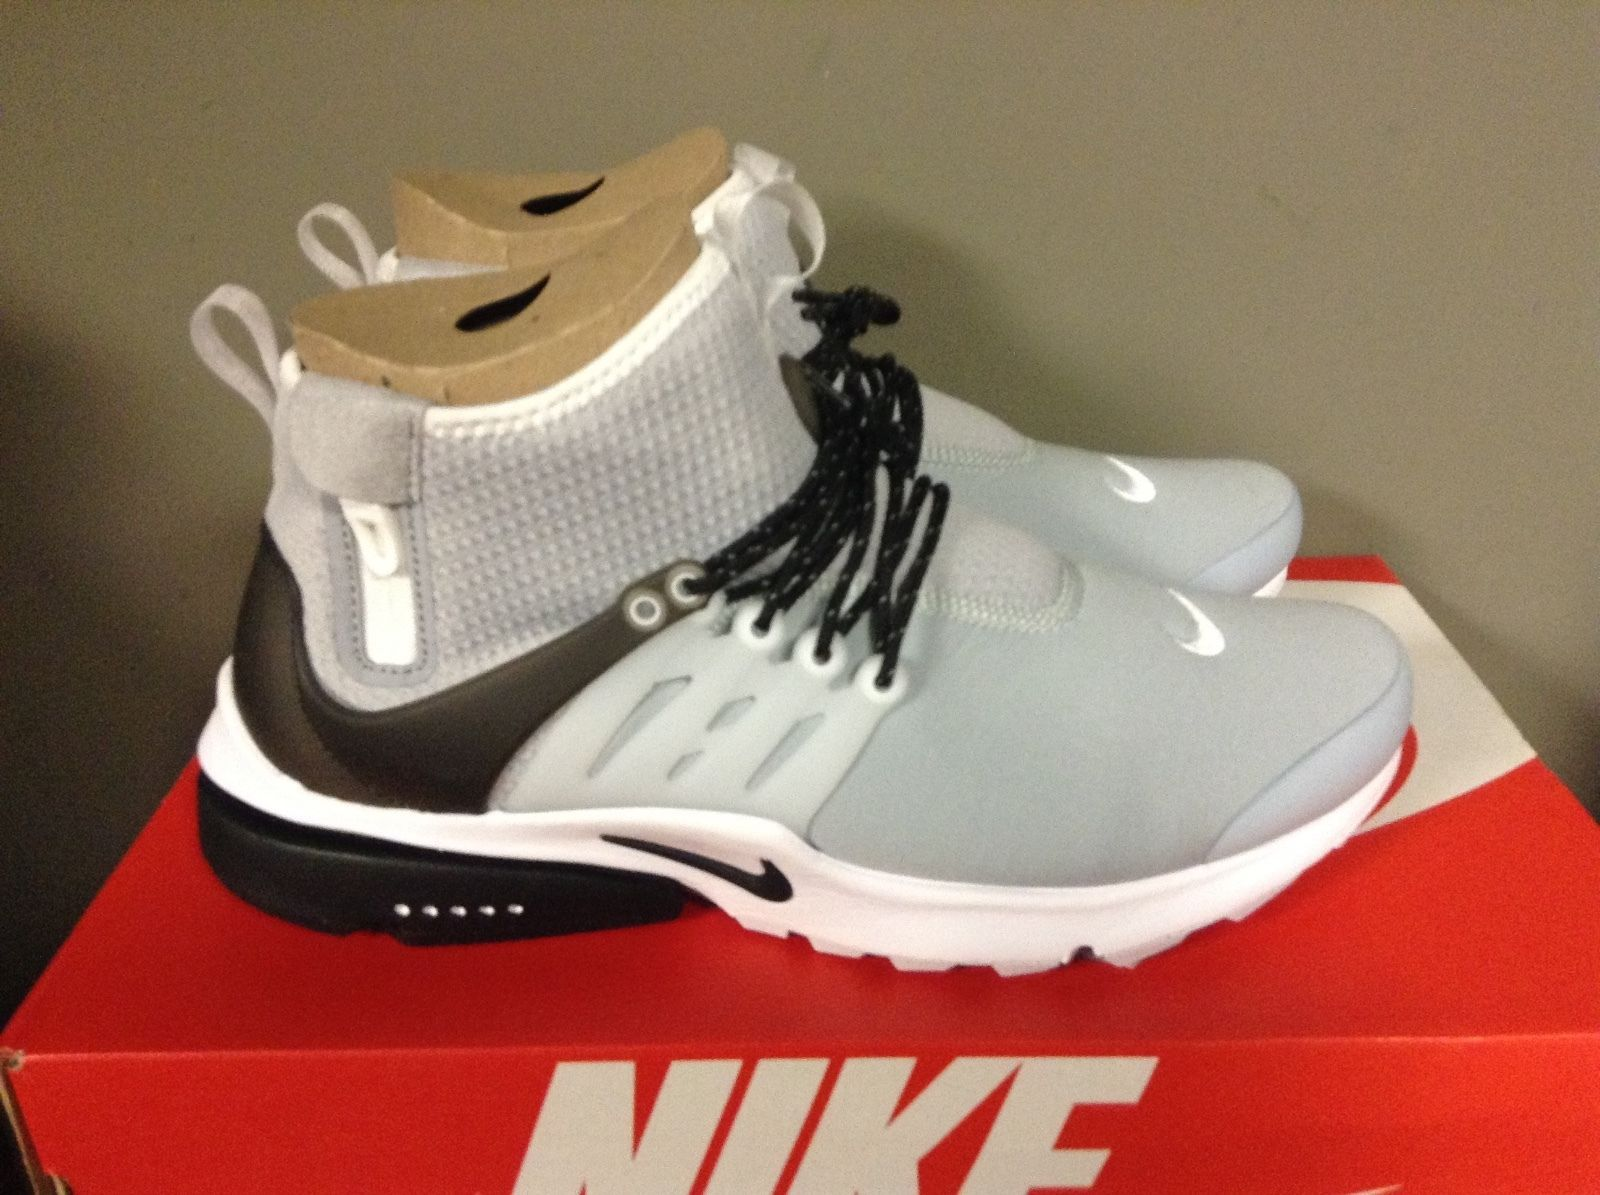 MEN'S NIKE AIR PRESTO UTILITY MID-TOP SHOE WOLF GREY/BLACK-WHITE 859524